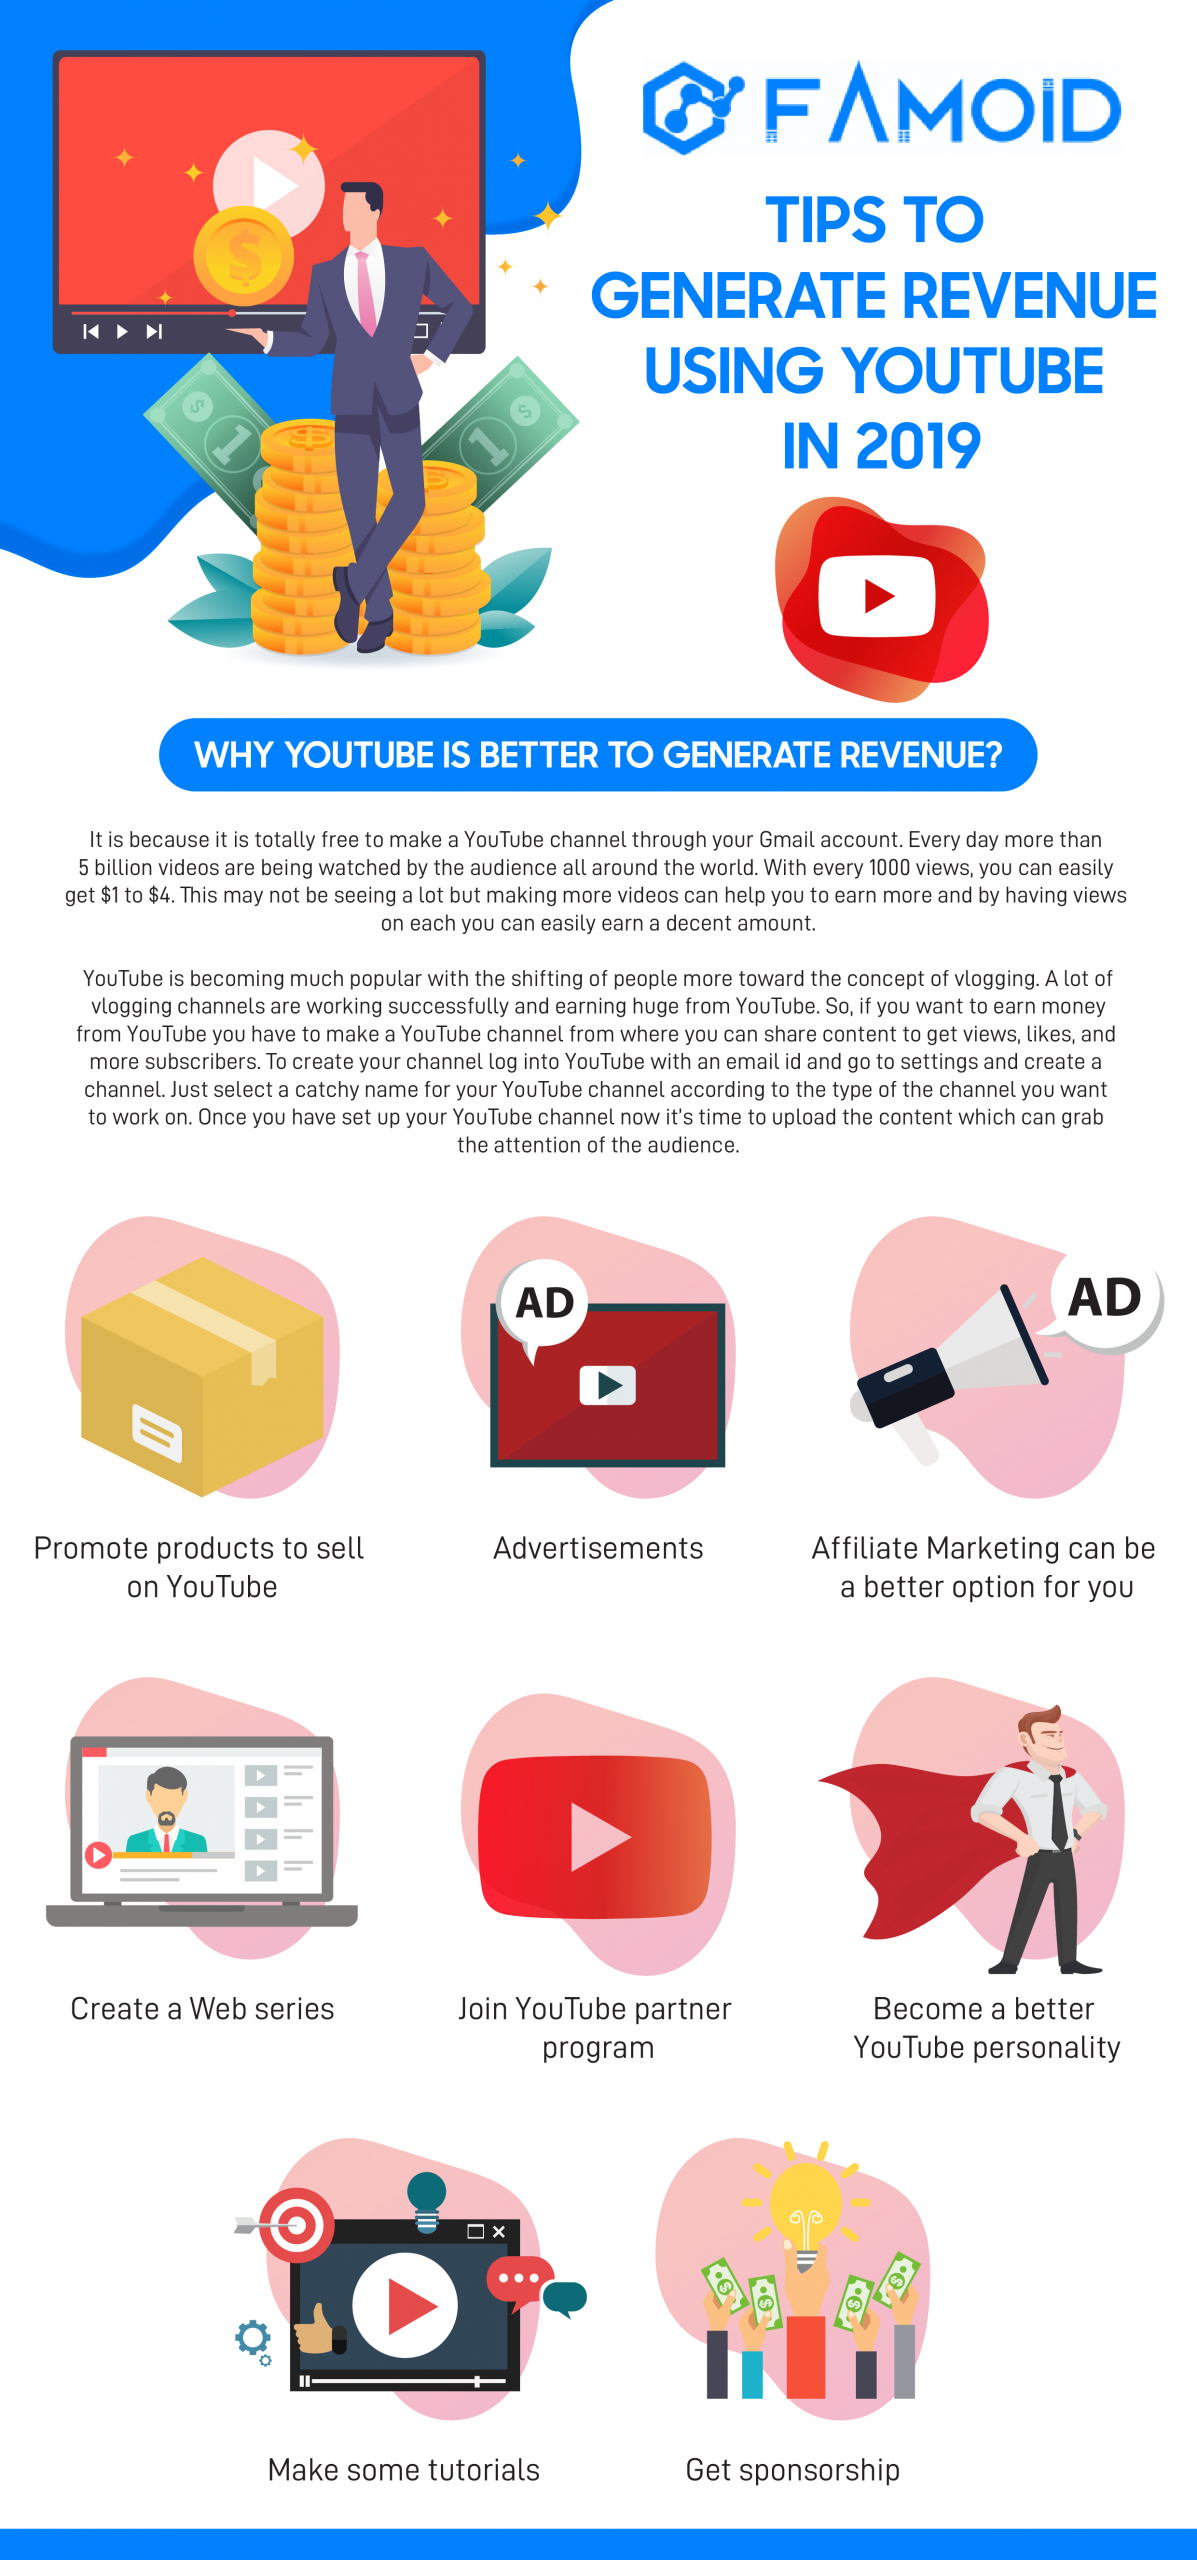 Tips to Generate Revenue from Youtube - Famoid's Infographic